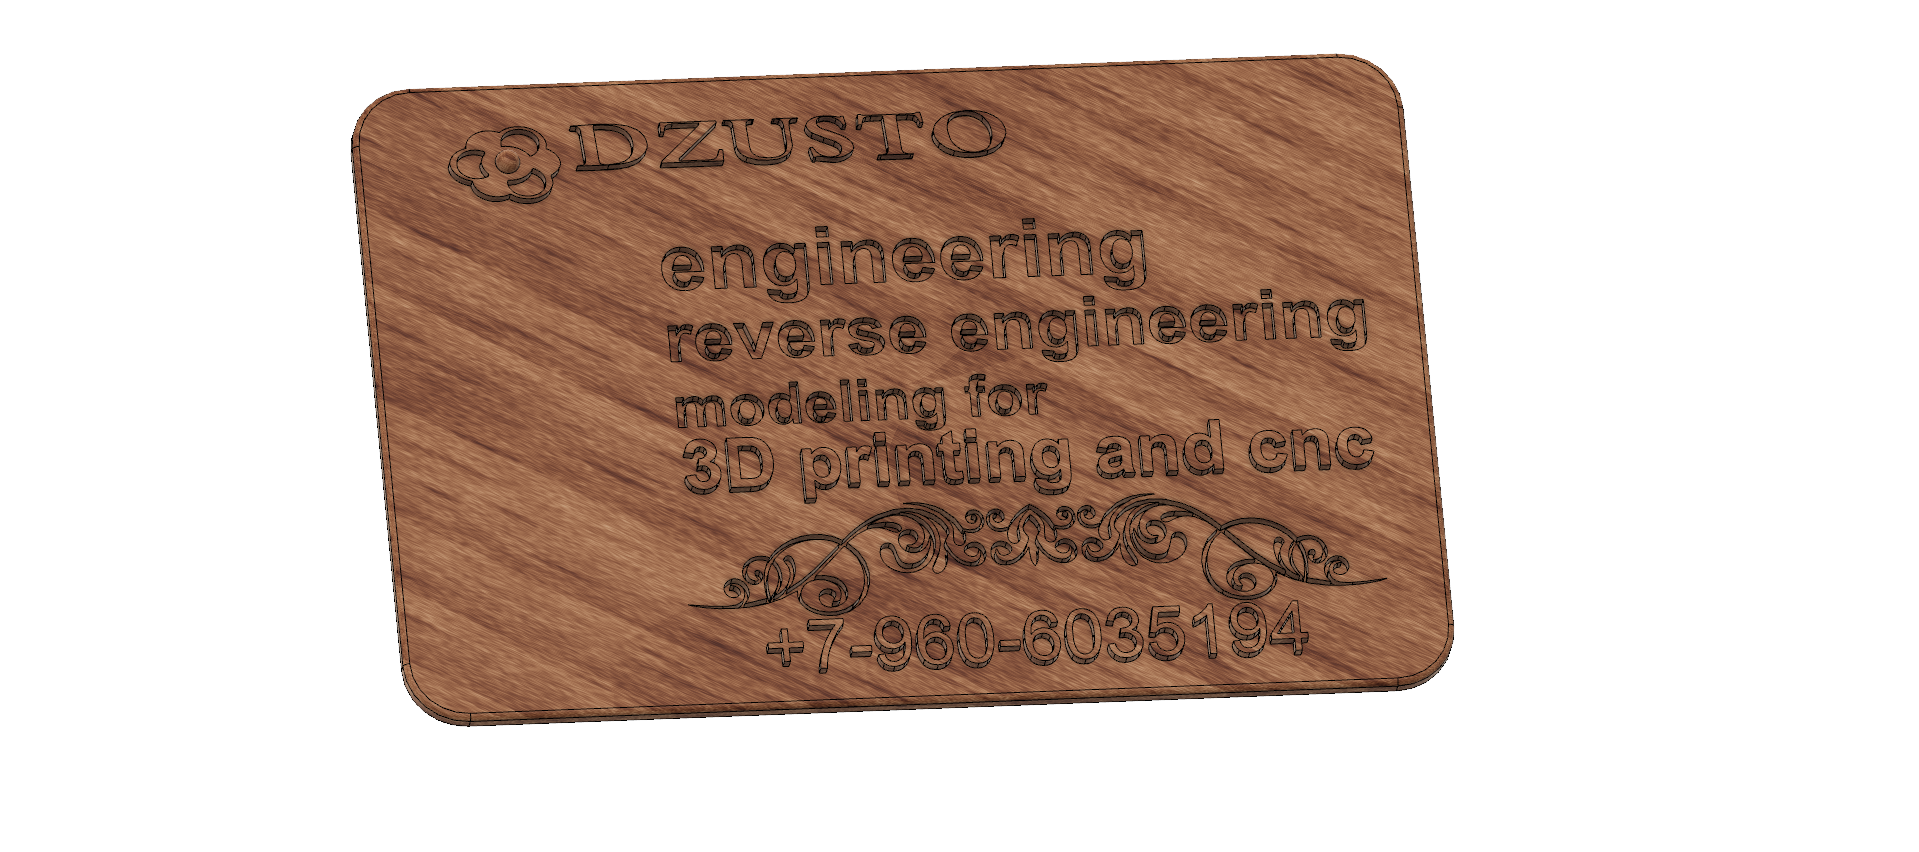 business card 01 v4.png Download free STL file Modeling product engineering reverse-engineering 3d print cnc • 3D printing design, Dzusto